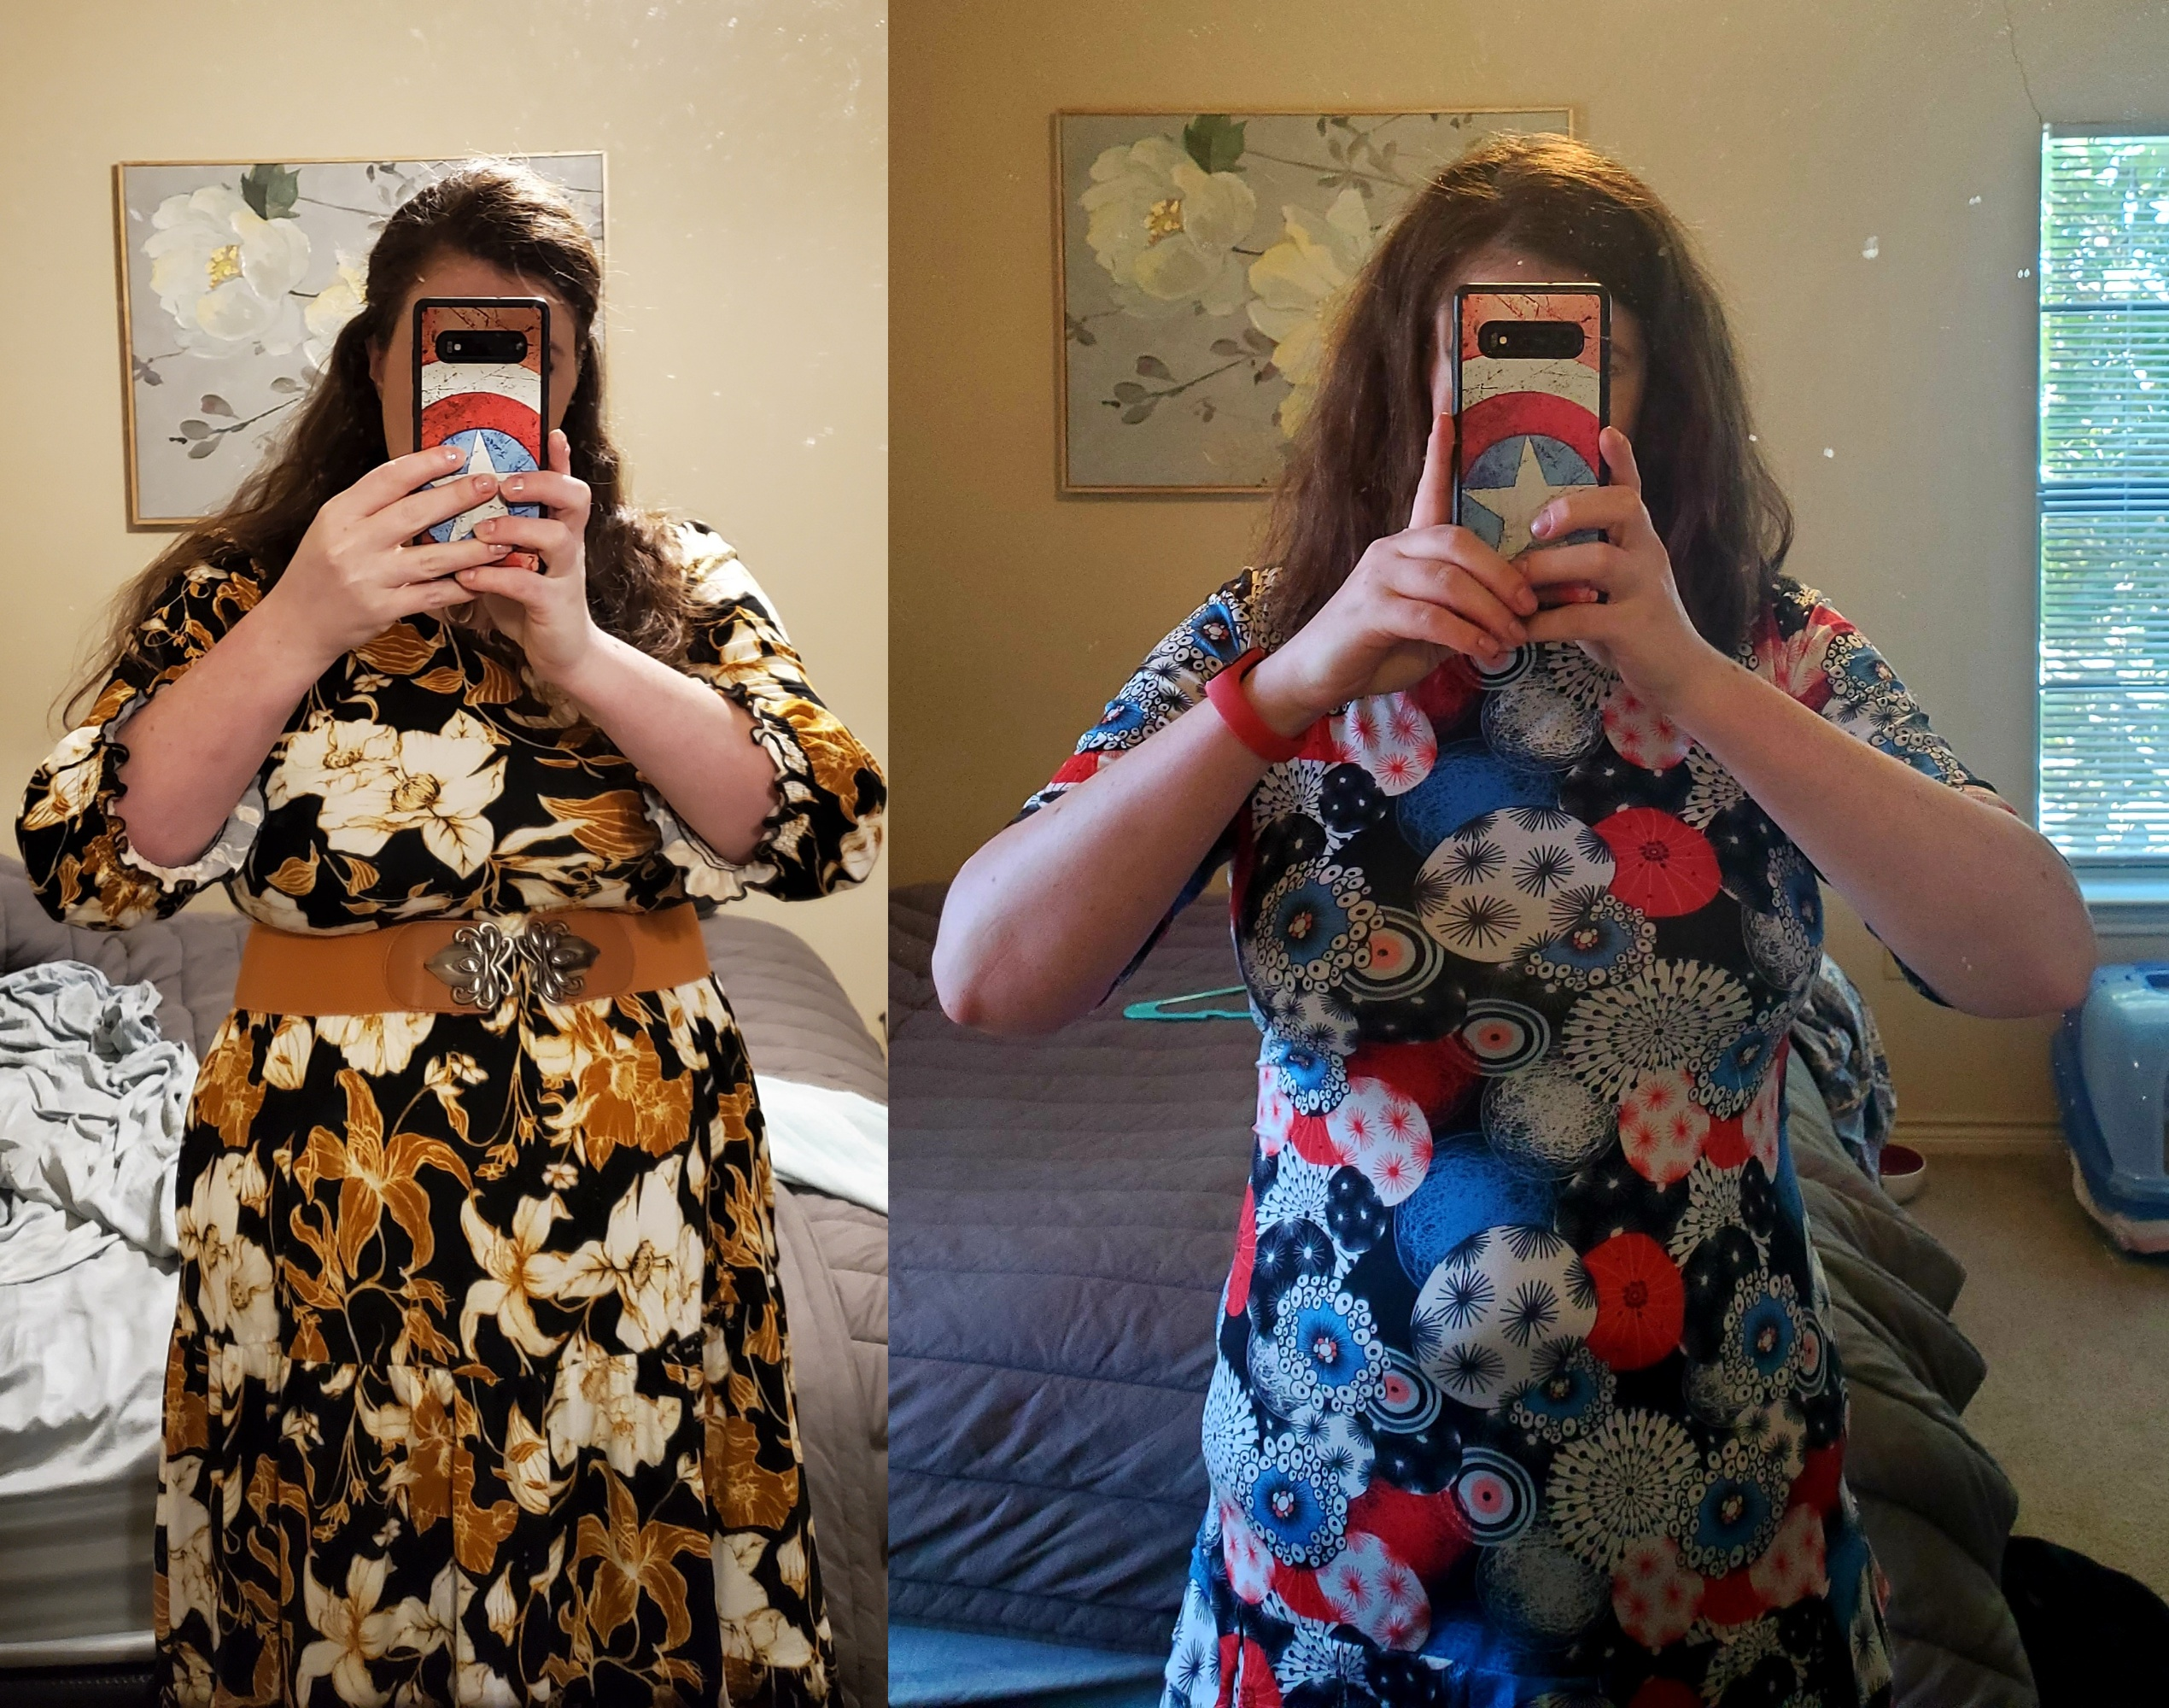 5 feet 9 Female 53 lbs Weight Loss Before and After 230 lbs to 177 lbs